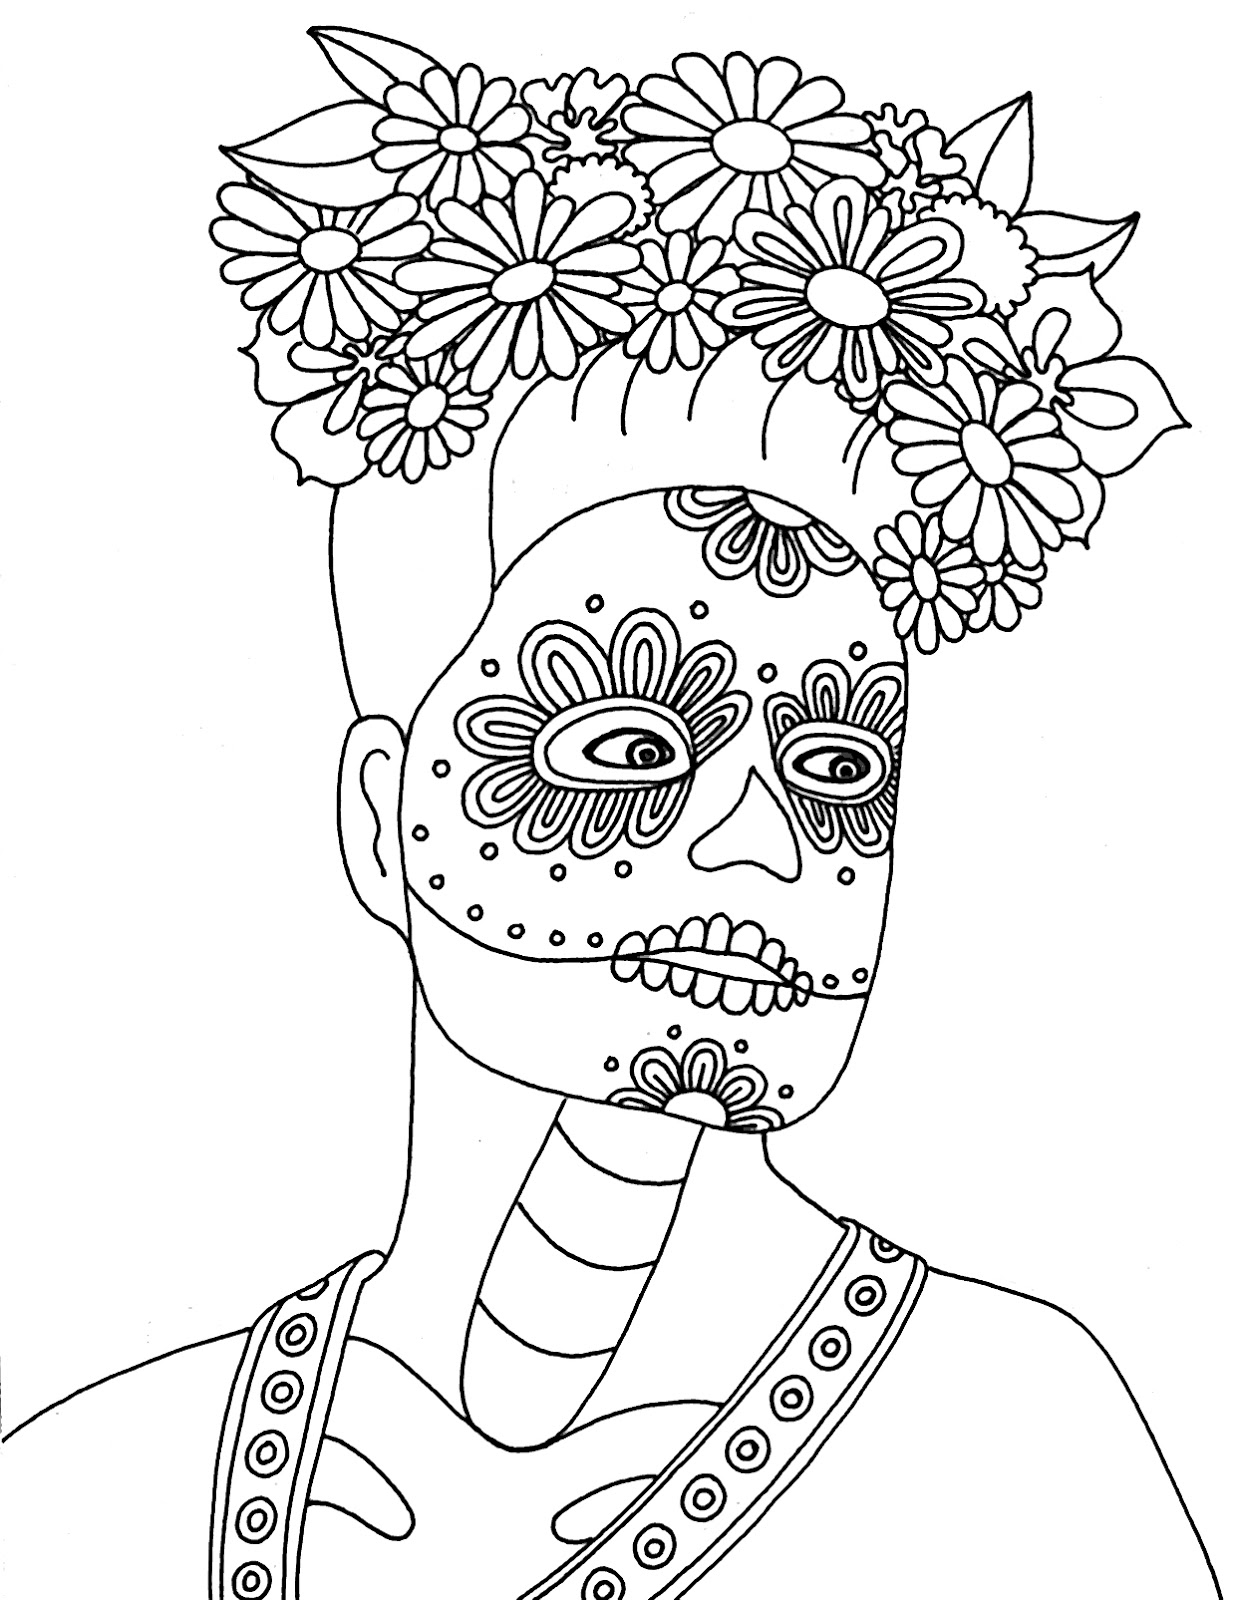 coloring page people free pictures of famous people clipartsco coloring people page